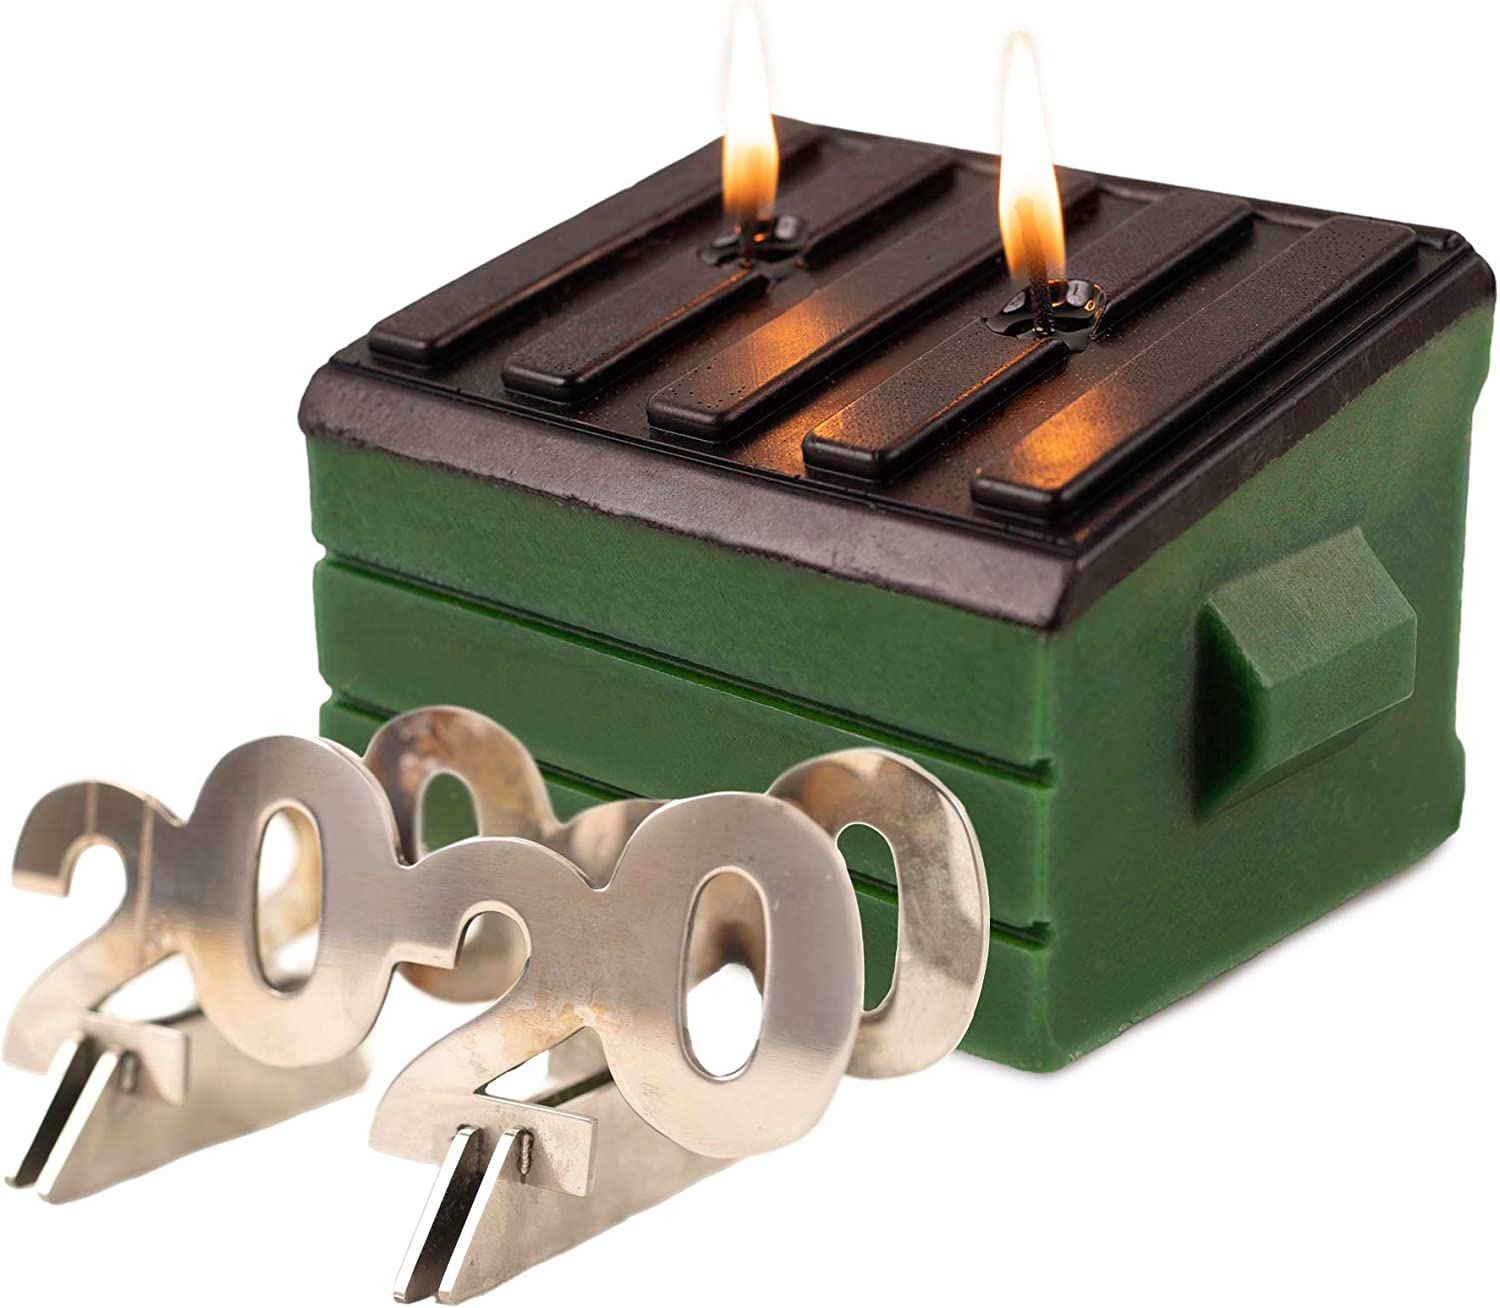 2020 Dumpster Fire Novelty Candle Unique Funny Gift Novelty Adults Can Enjoy! Paraffin Wax /& Stainless Steel 2020 Interior Steel Frame Wick Works Limited Edition